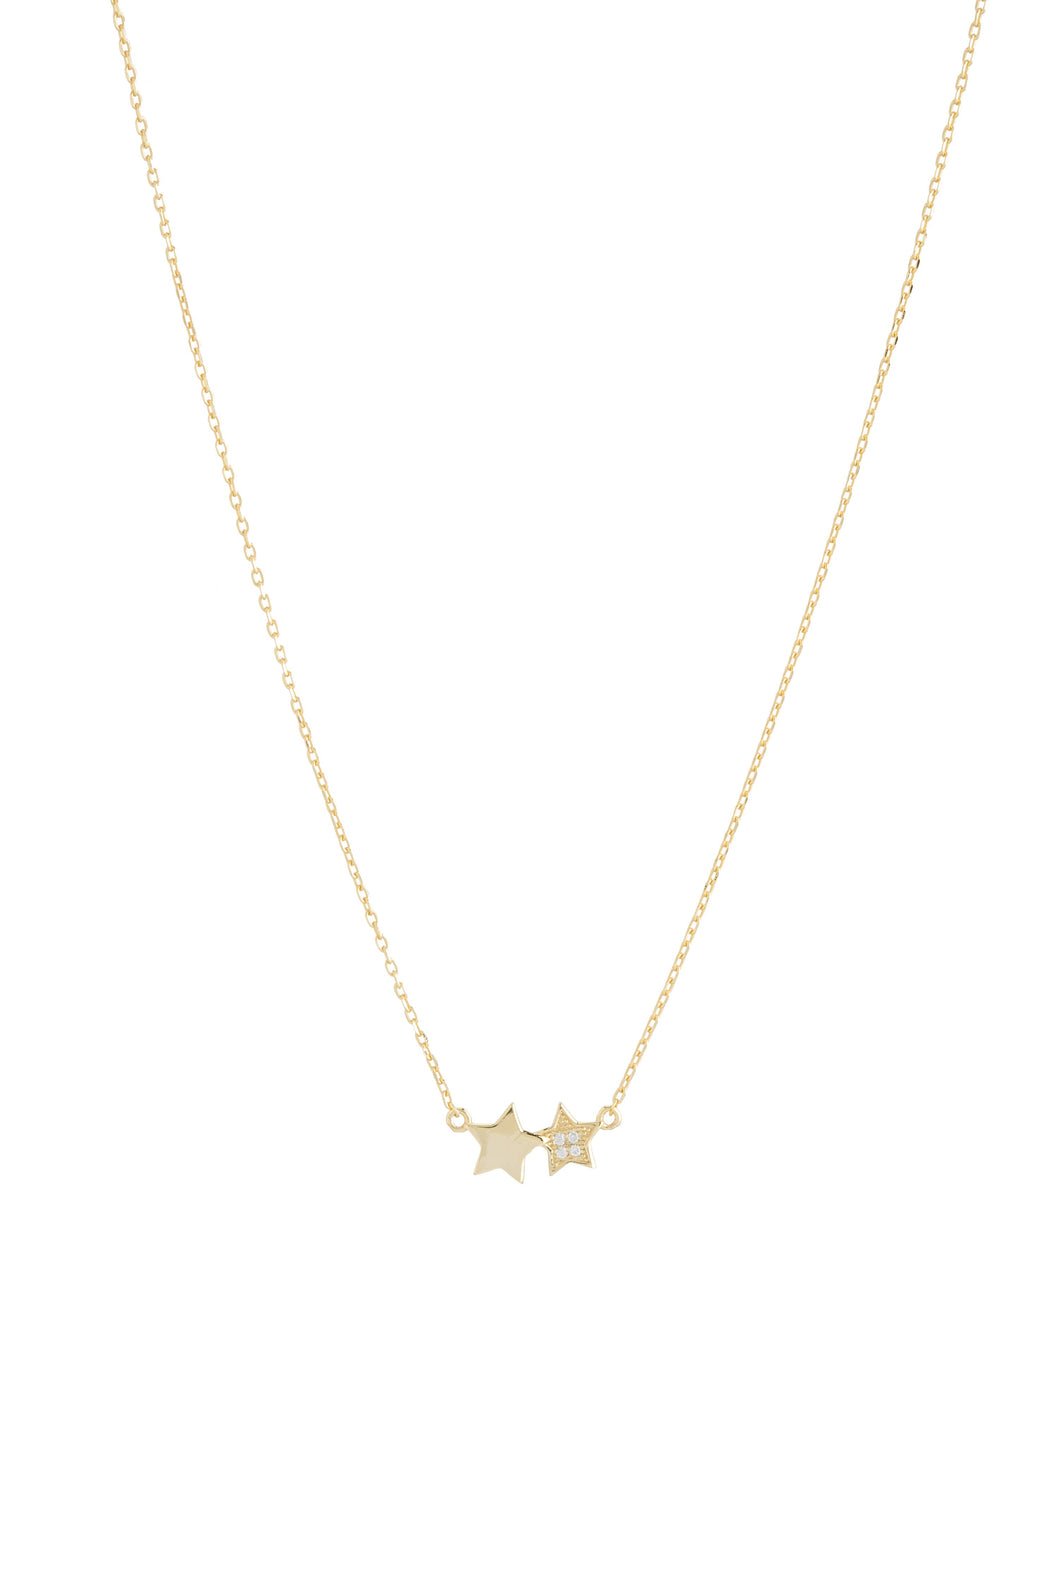 DOUBLE STAR CZ NECKLACE